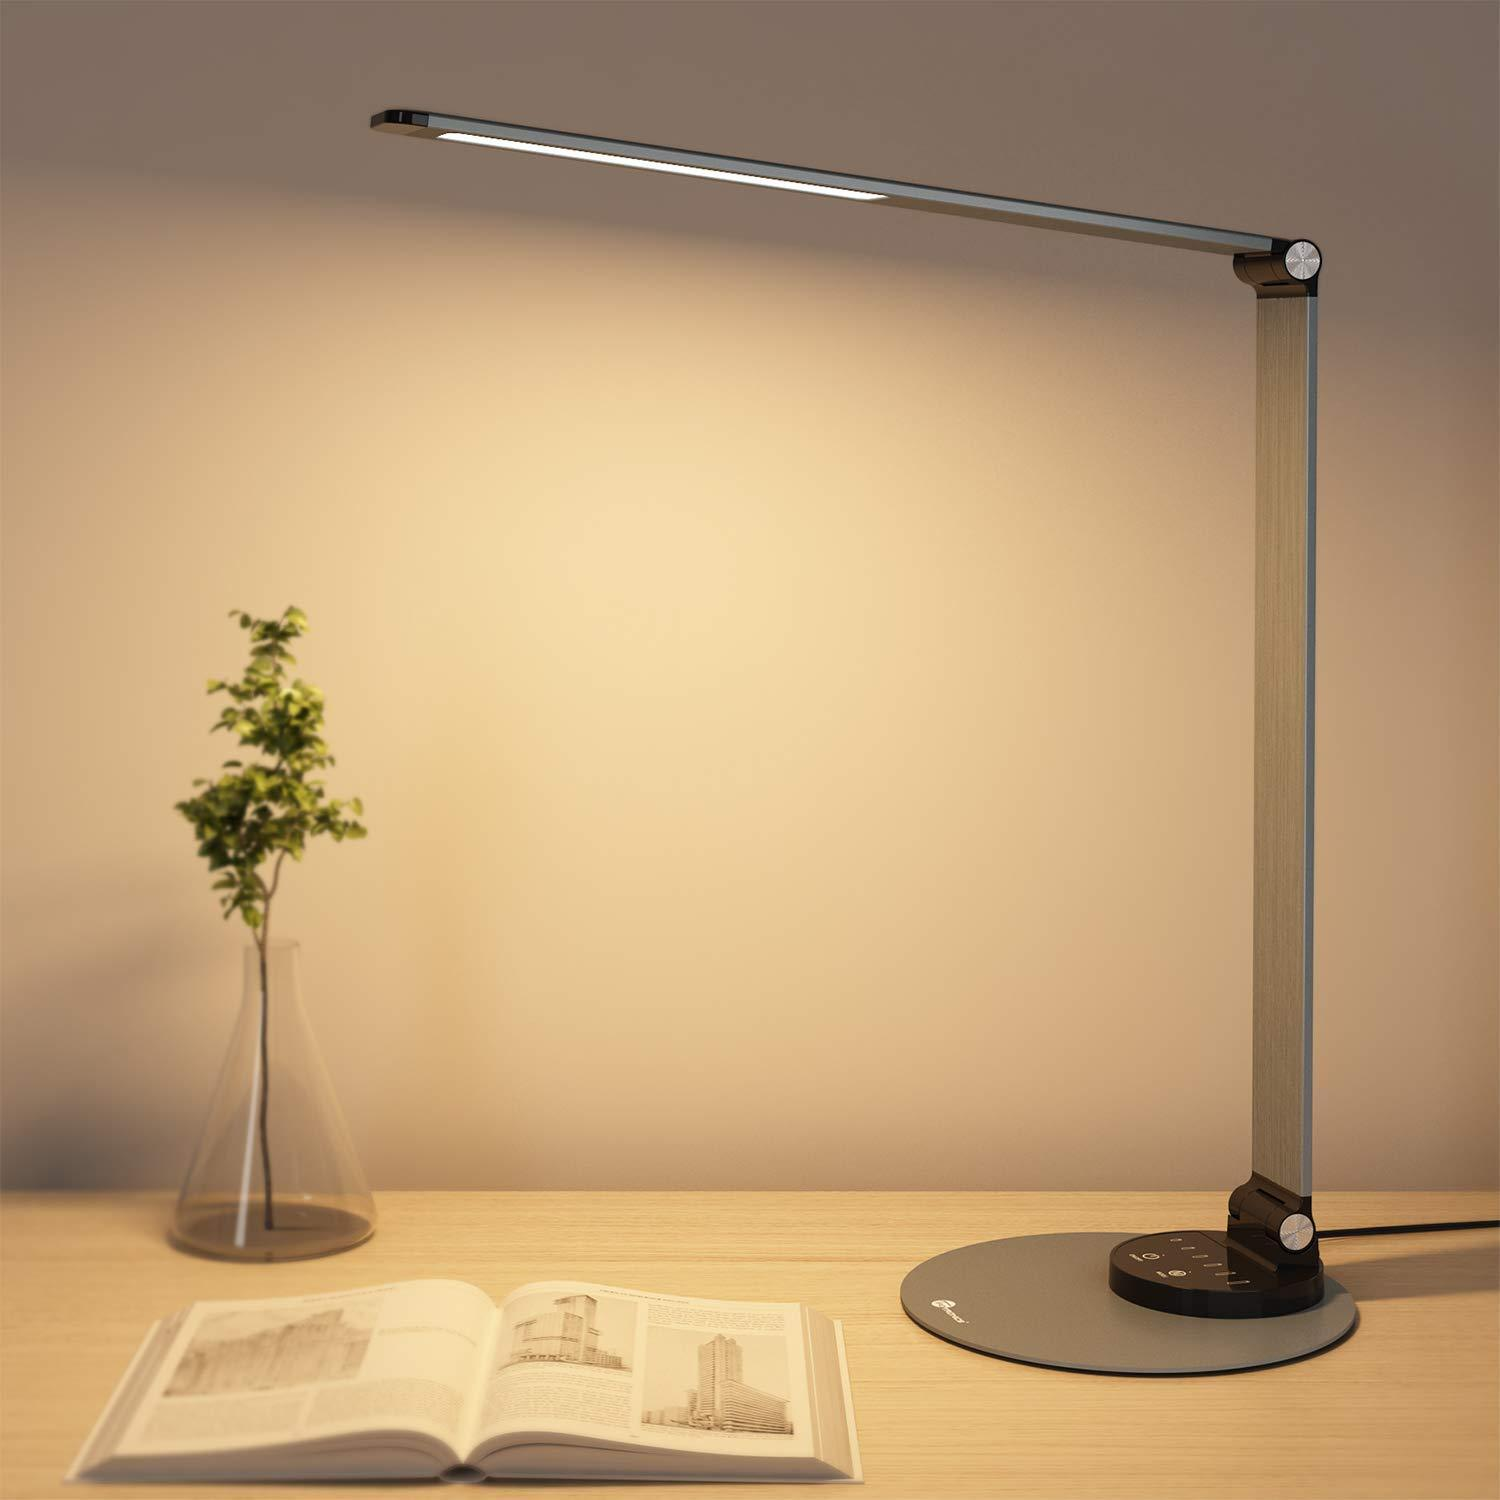 TaoTronics Aluminum Alloy Dimmable LED Desk Lamp DL22 Gallery 7